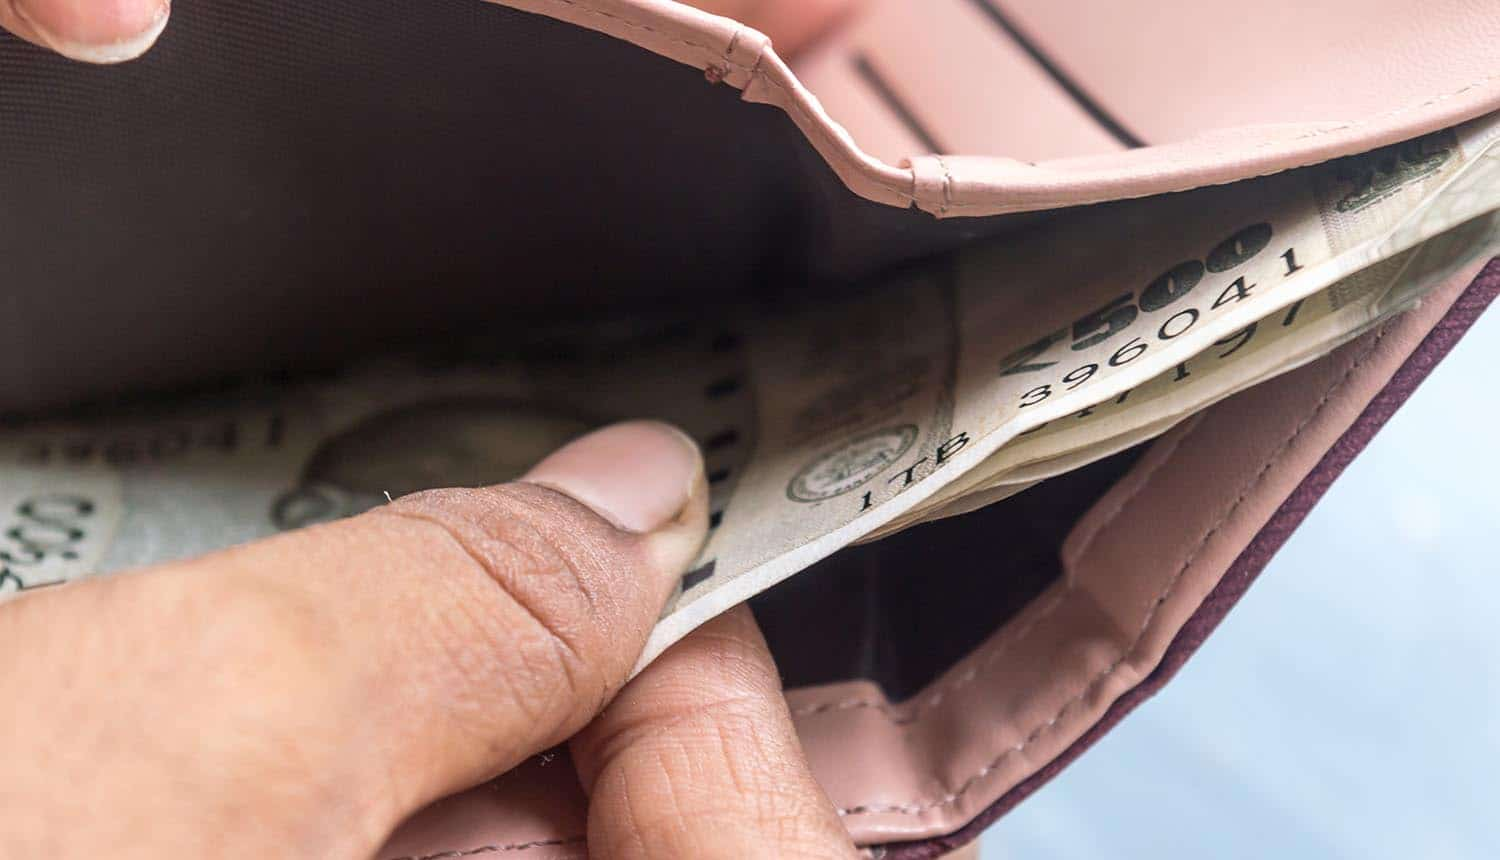 Woman taking out banknotes from leather wallet showing risks in Bitcoin